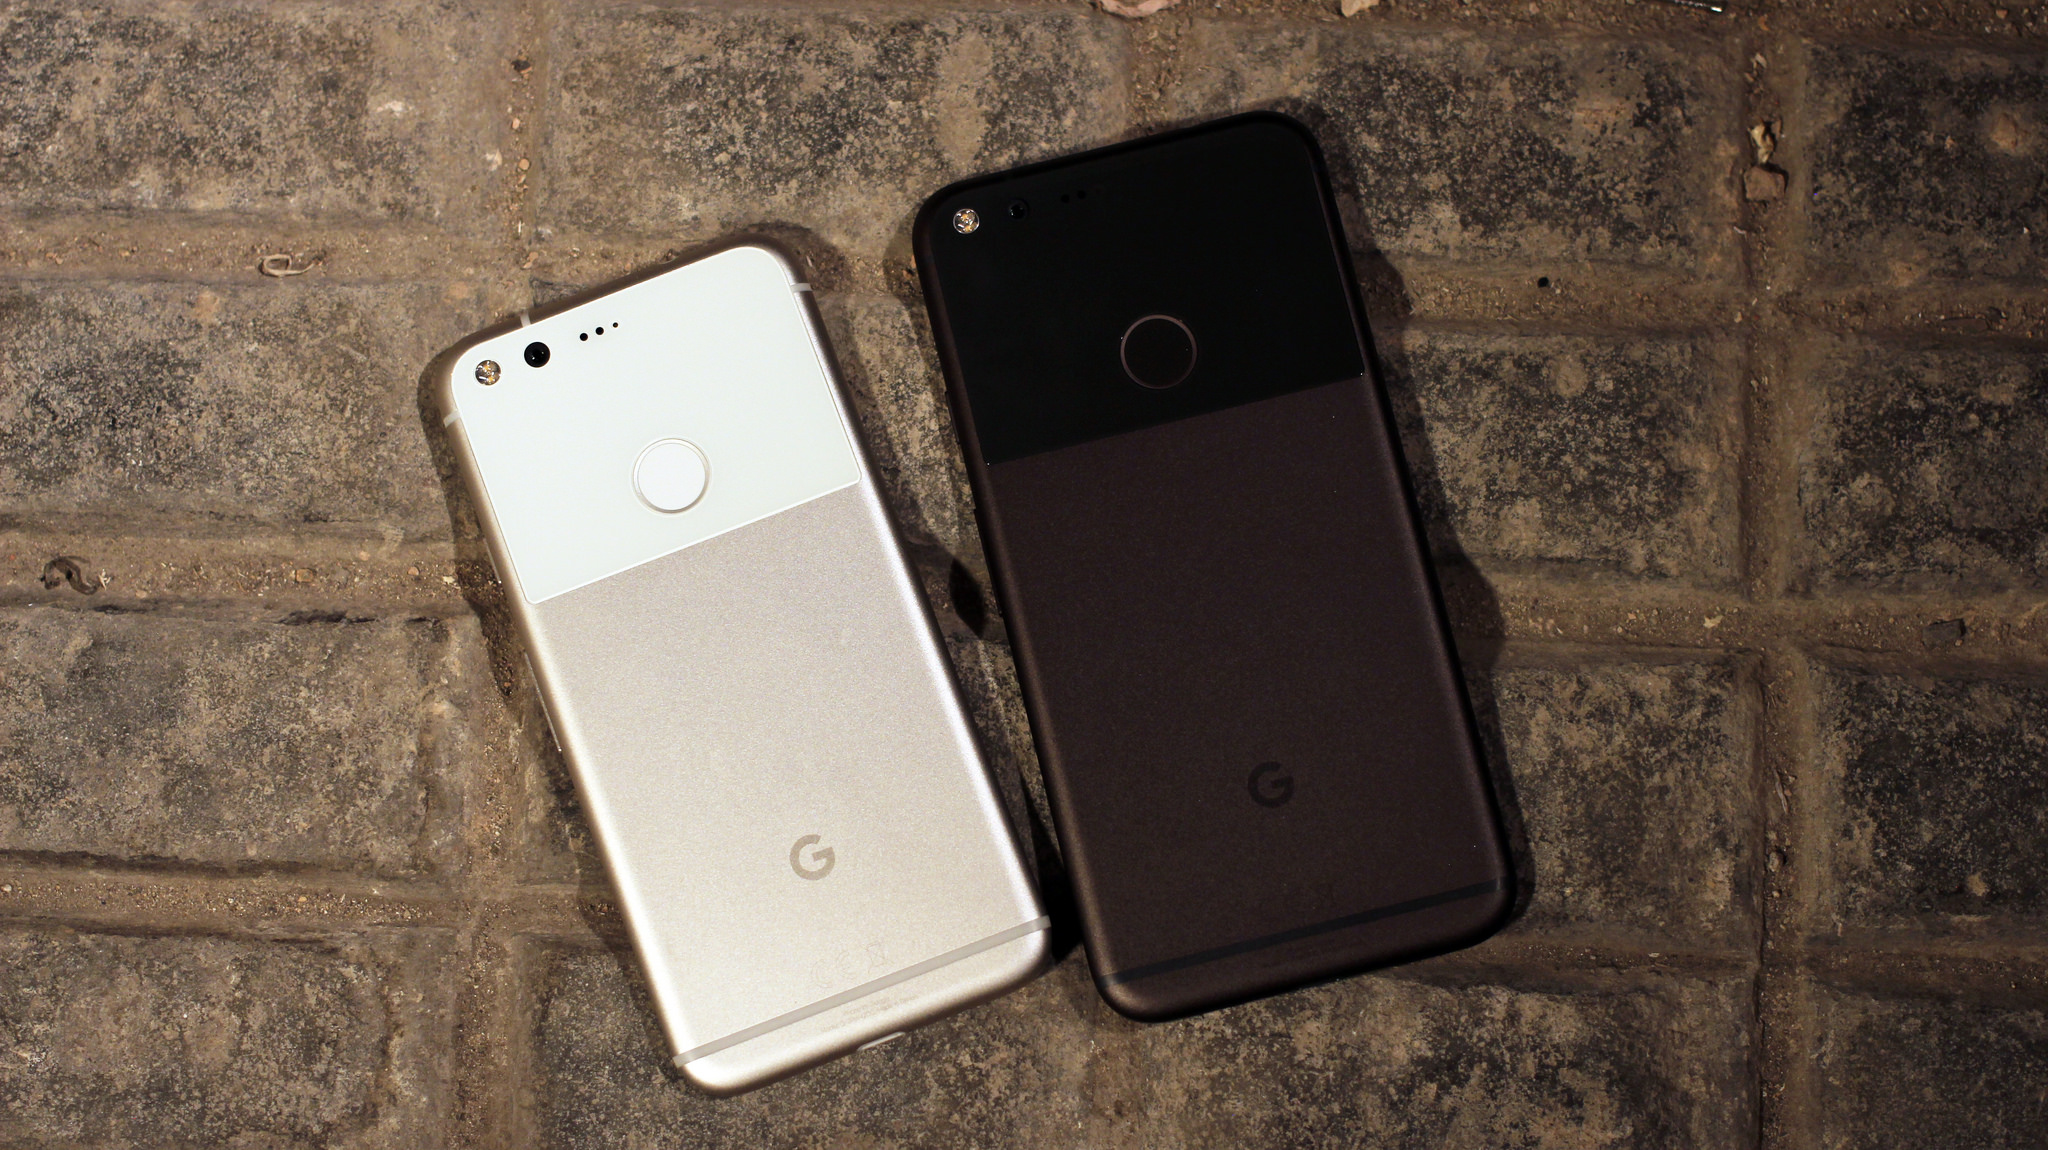 Is Google Pixel iPhone Killer?